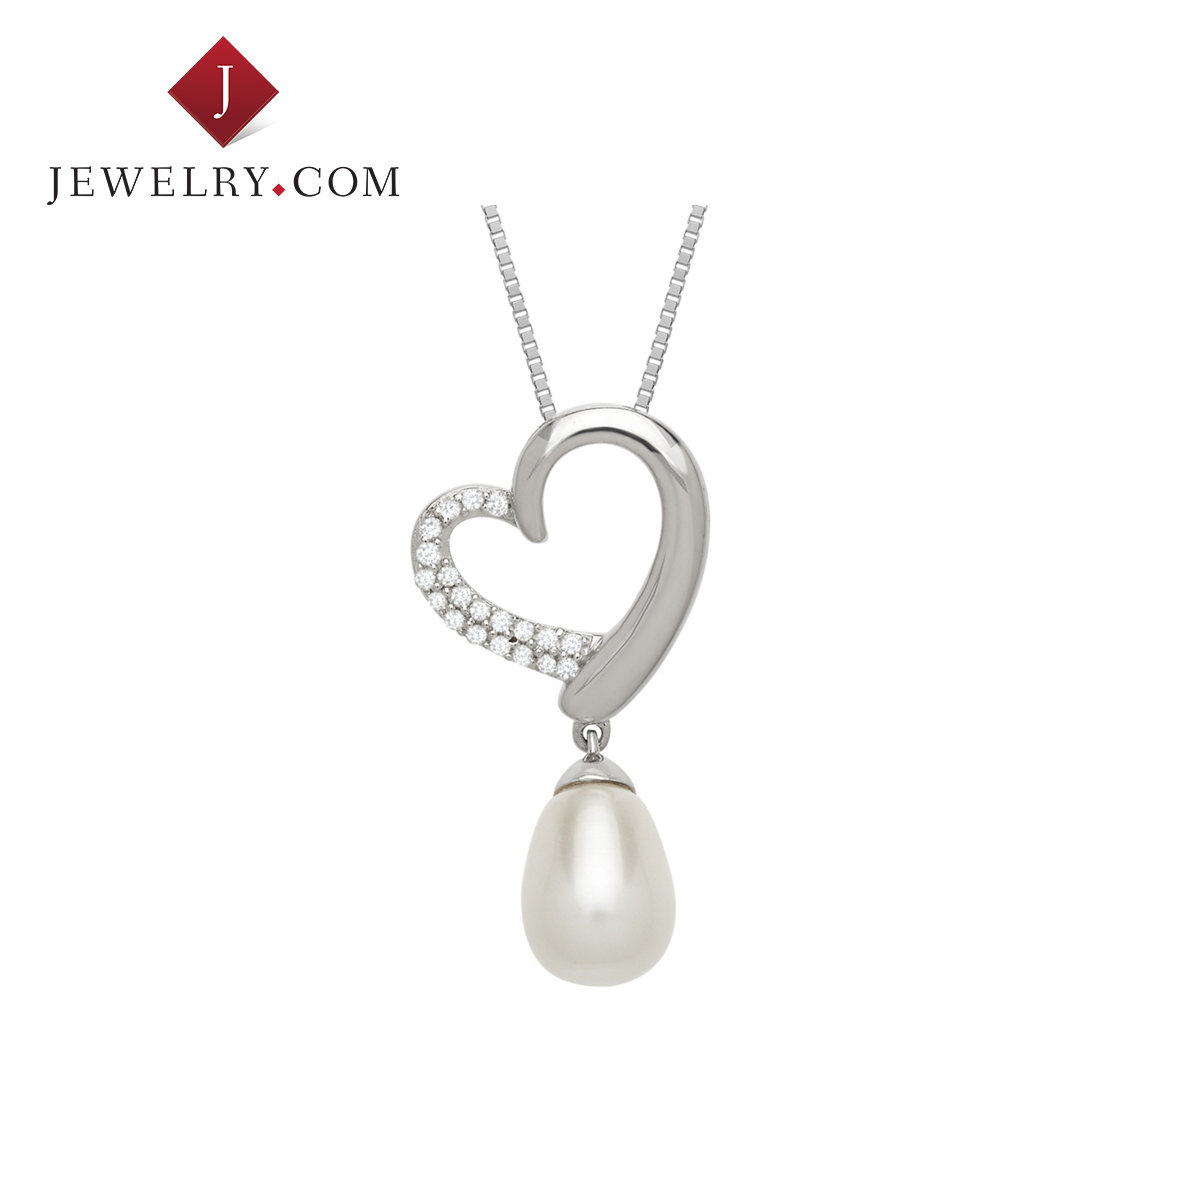 Jewelry.com official 0.1 karat diamond pearl 925 silver heart pendant charm sweet temperament lady jewelry